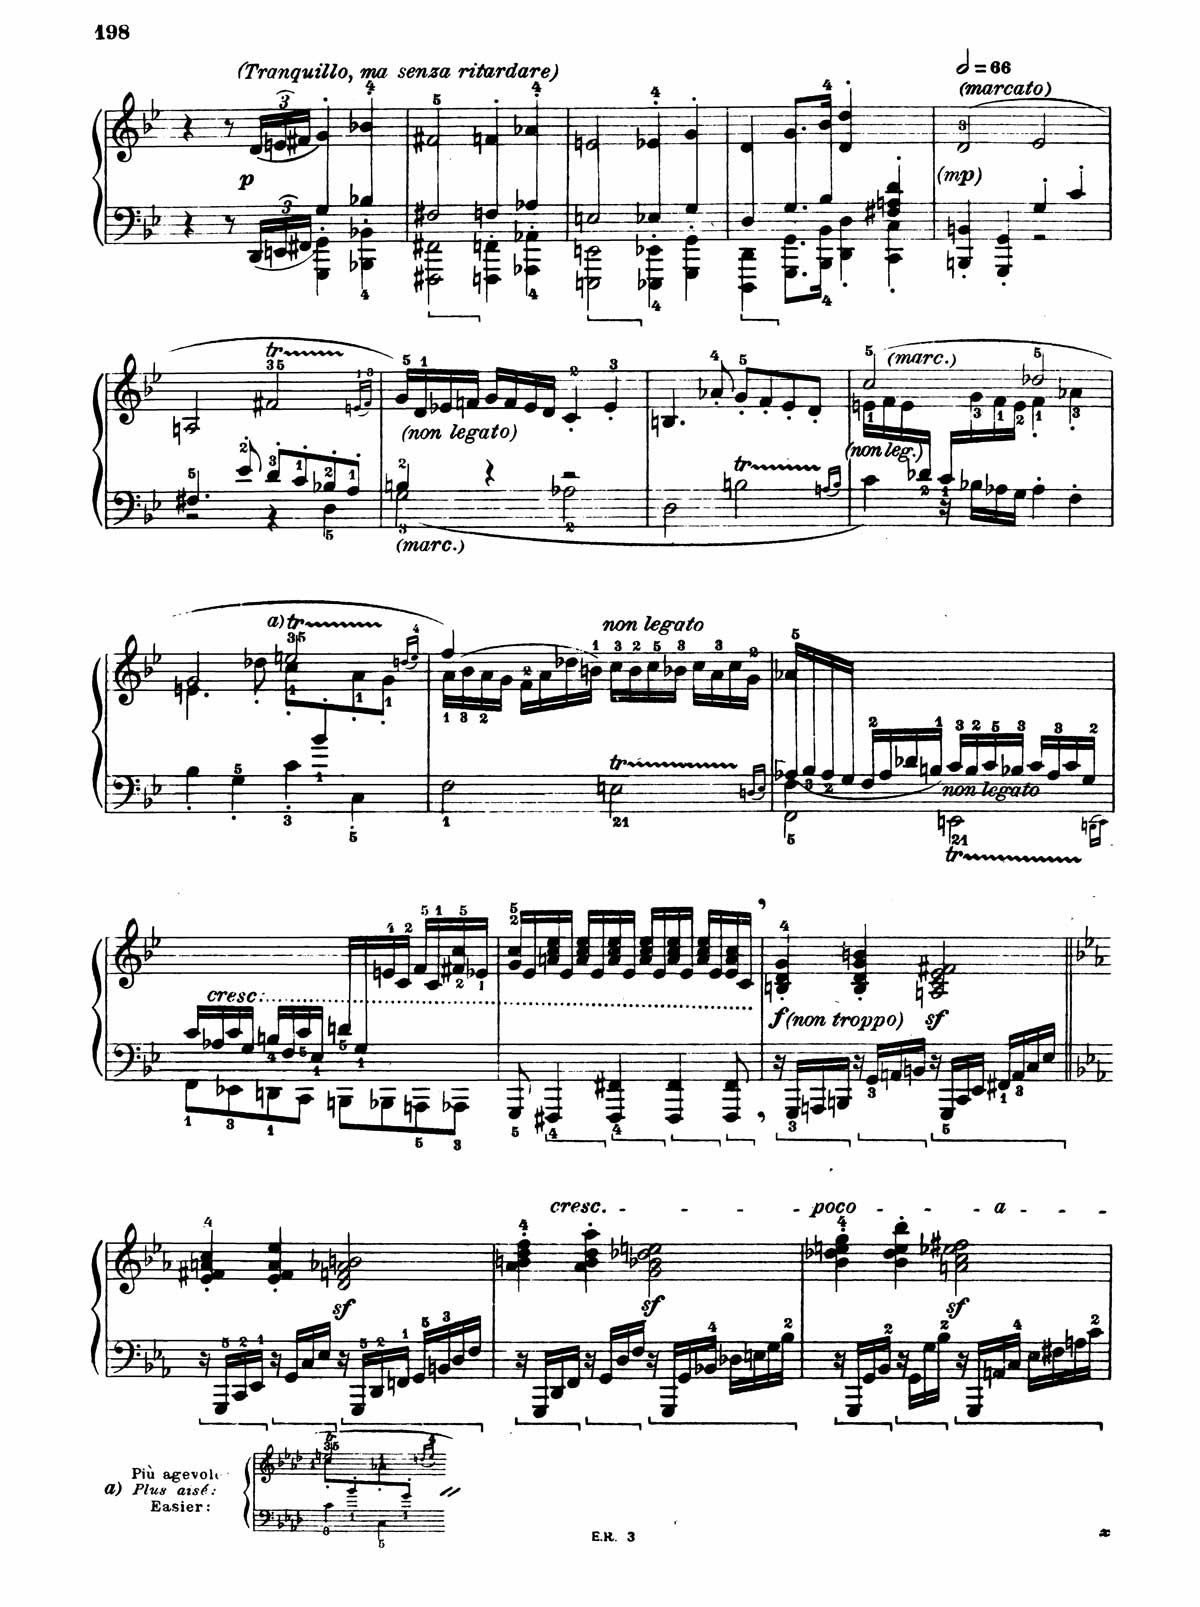 Beethoven Piano Sonata 32-6 sheet music